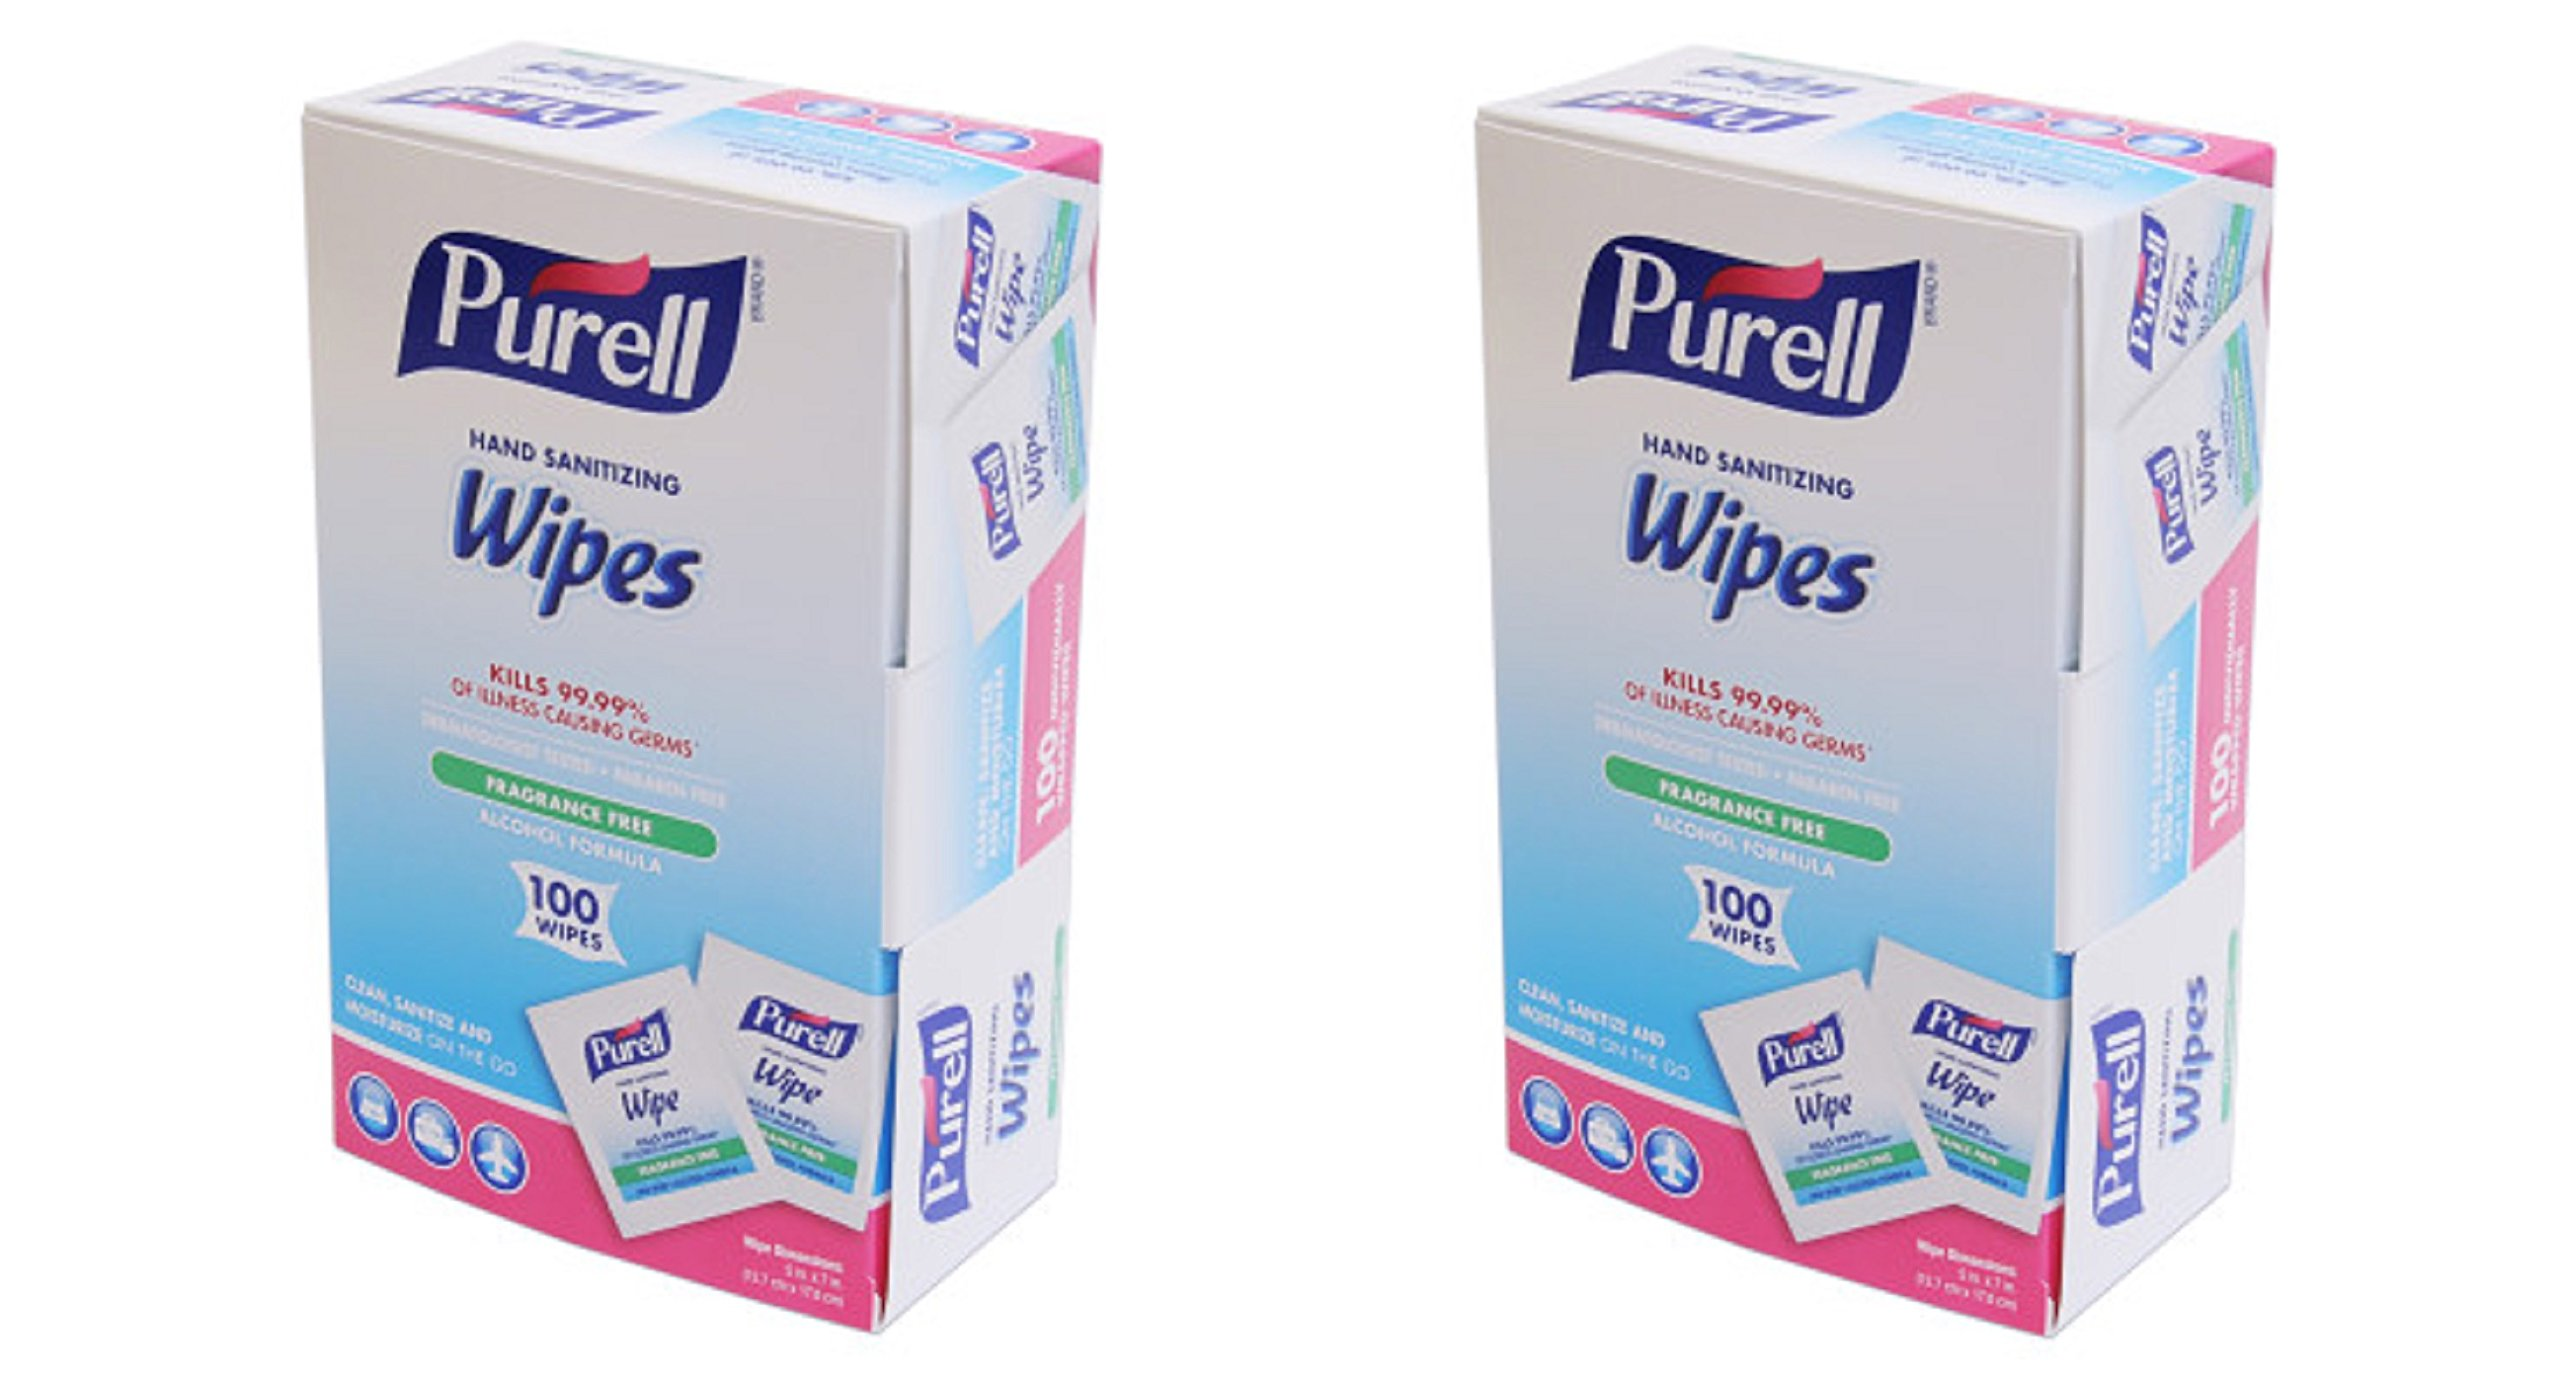 GOJO : PURELL Premoistened Sanitizing Hand Wipes, 5 x 7, 100/Box -:- Sold as 2 Packs of - 100 - / - Total of 200 Each by Gojo